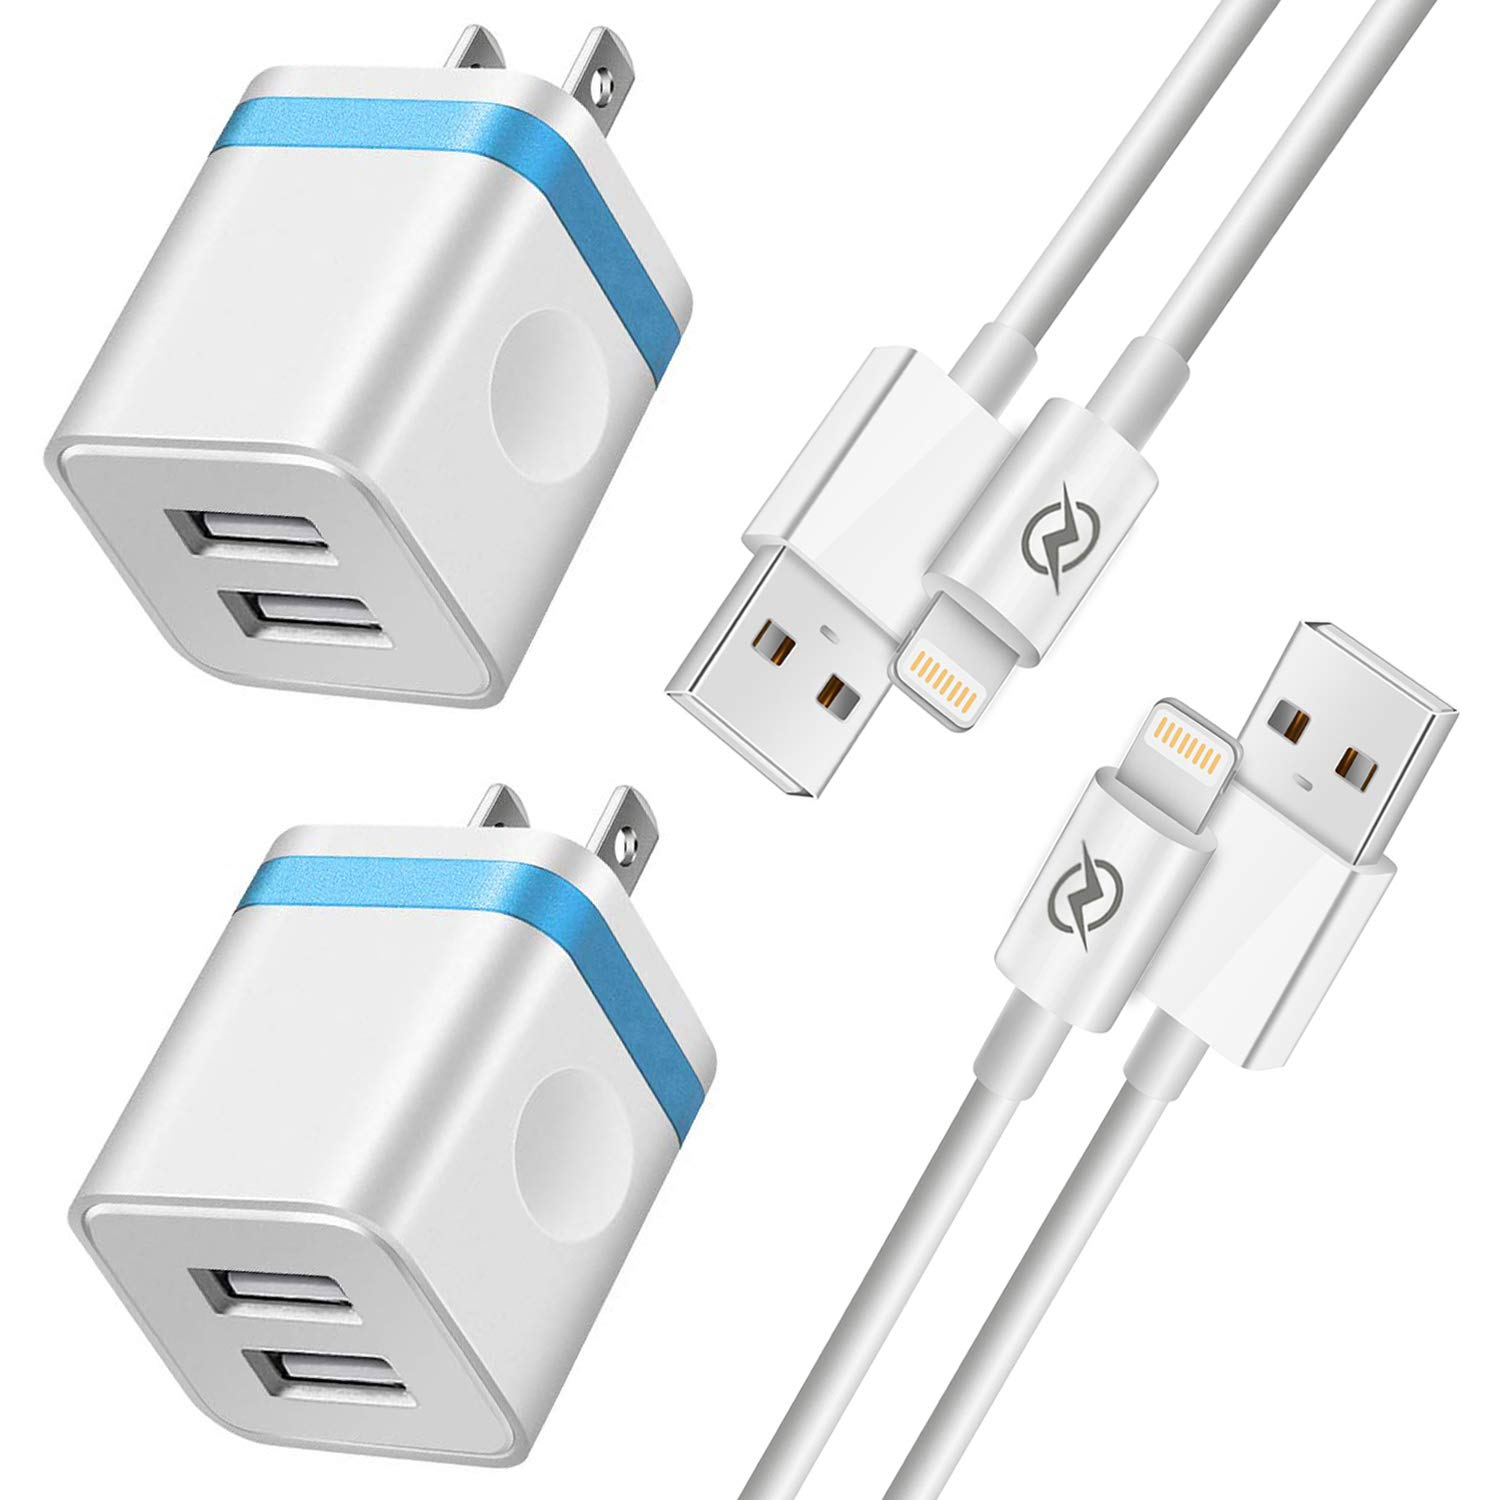 NNICE Phone Charger 6Ft with Plug, 6 Foot Fast Charging Cable Sync Cord and Dual Port UL Certified USB Wall Charger Adapter Compatible with Phone XS/XS Max/XR/X/ 8/7/ 6S Plus, 5C/ 5S/ SE(4 in I) by NNICE